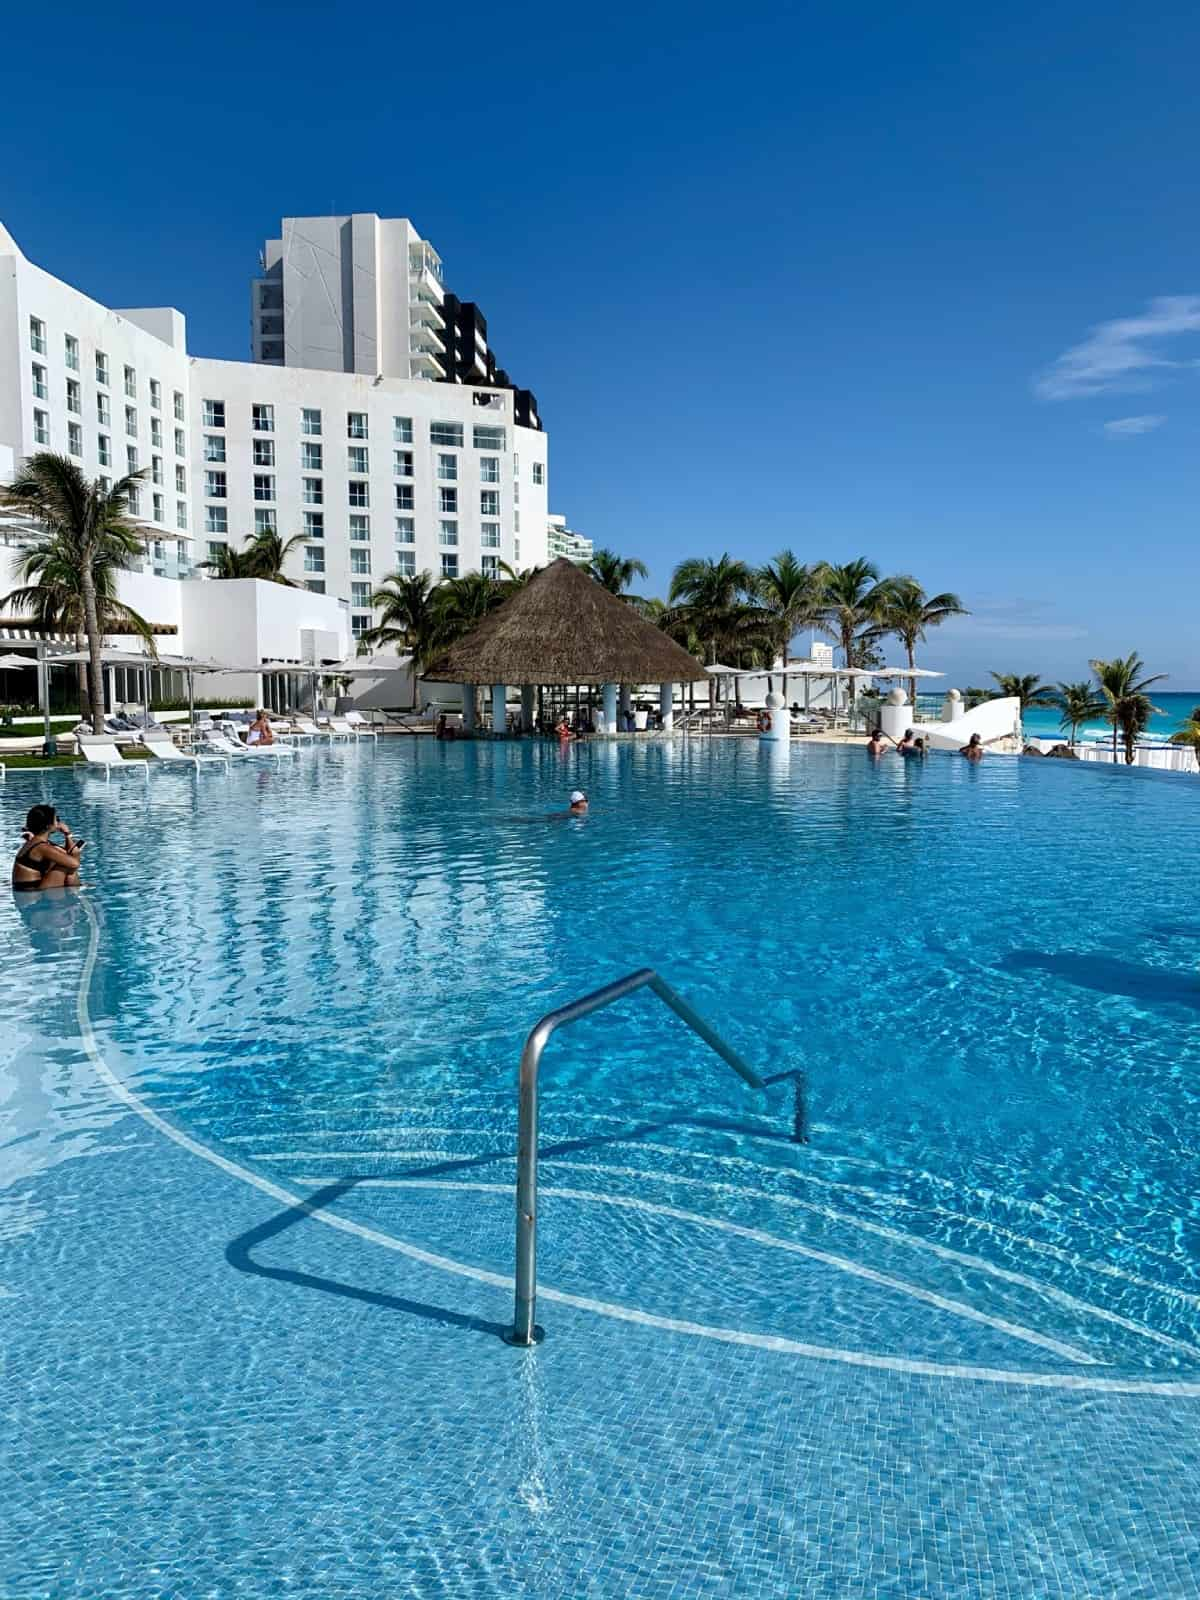 LeBlanc Cancun vs. Excellence Playa Mujeres | A detailed comparison of two of Cancun's top resorts, what to expect from rooms, service, food and drink, beach, pools, and more. Deep review of LeBlanc vs. EPM in Cancun area, what to do in Cancun, best Cancun resorts, where to stay in Cancun, top Mexico resorts. #cancun #mexico #leblanc #allinclusive #luxury